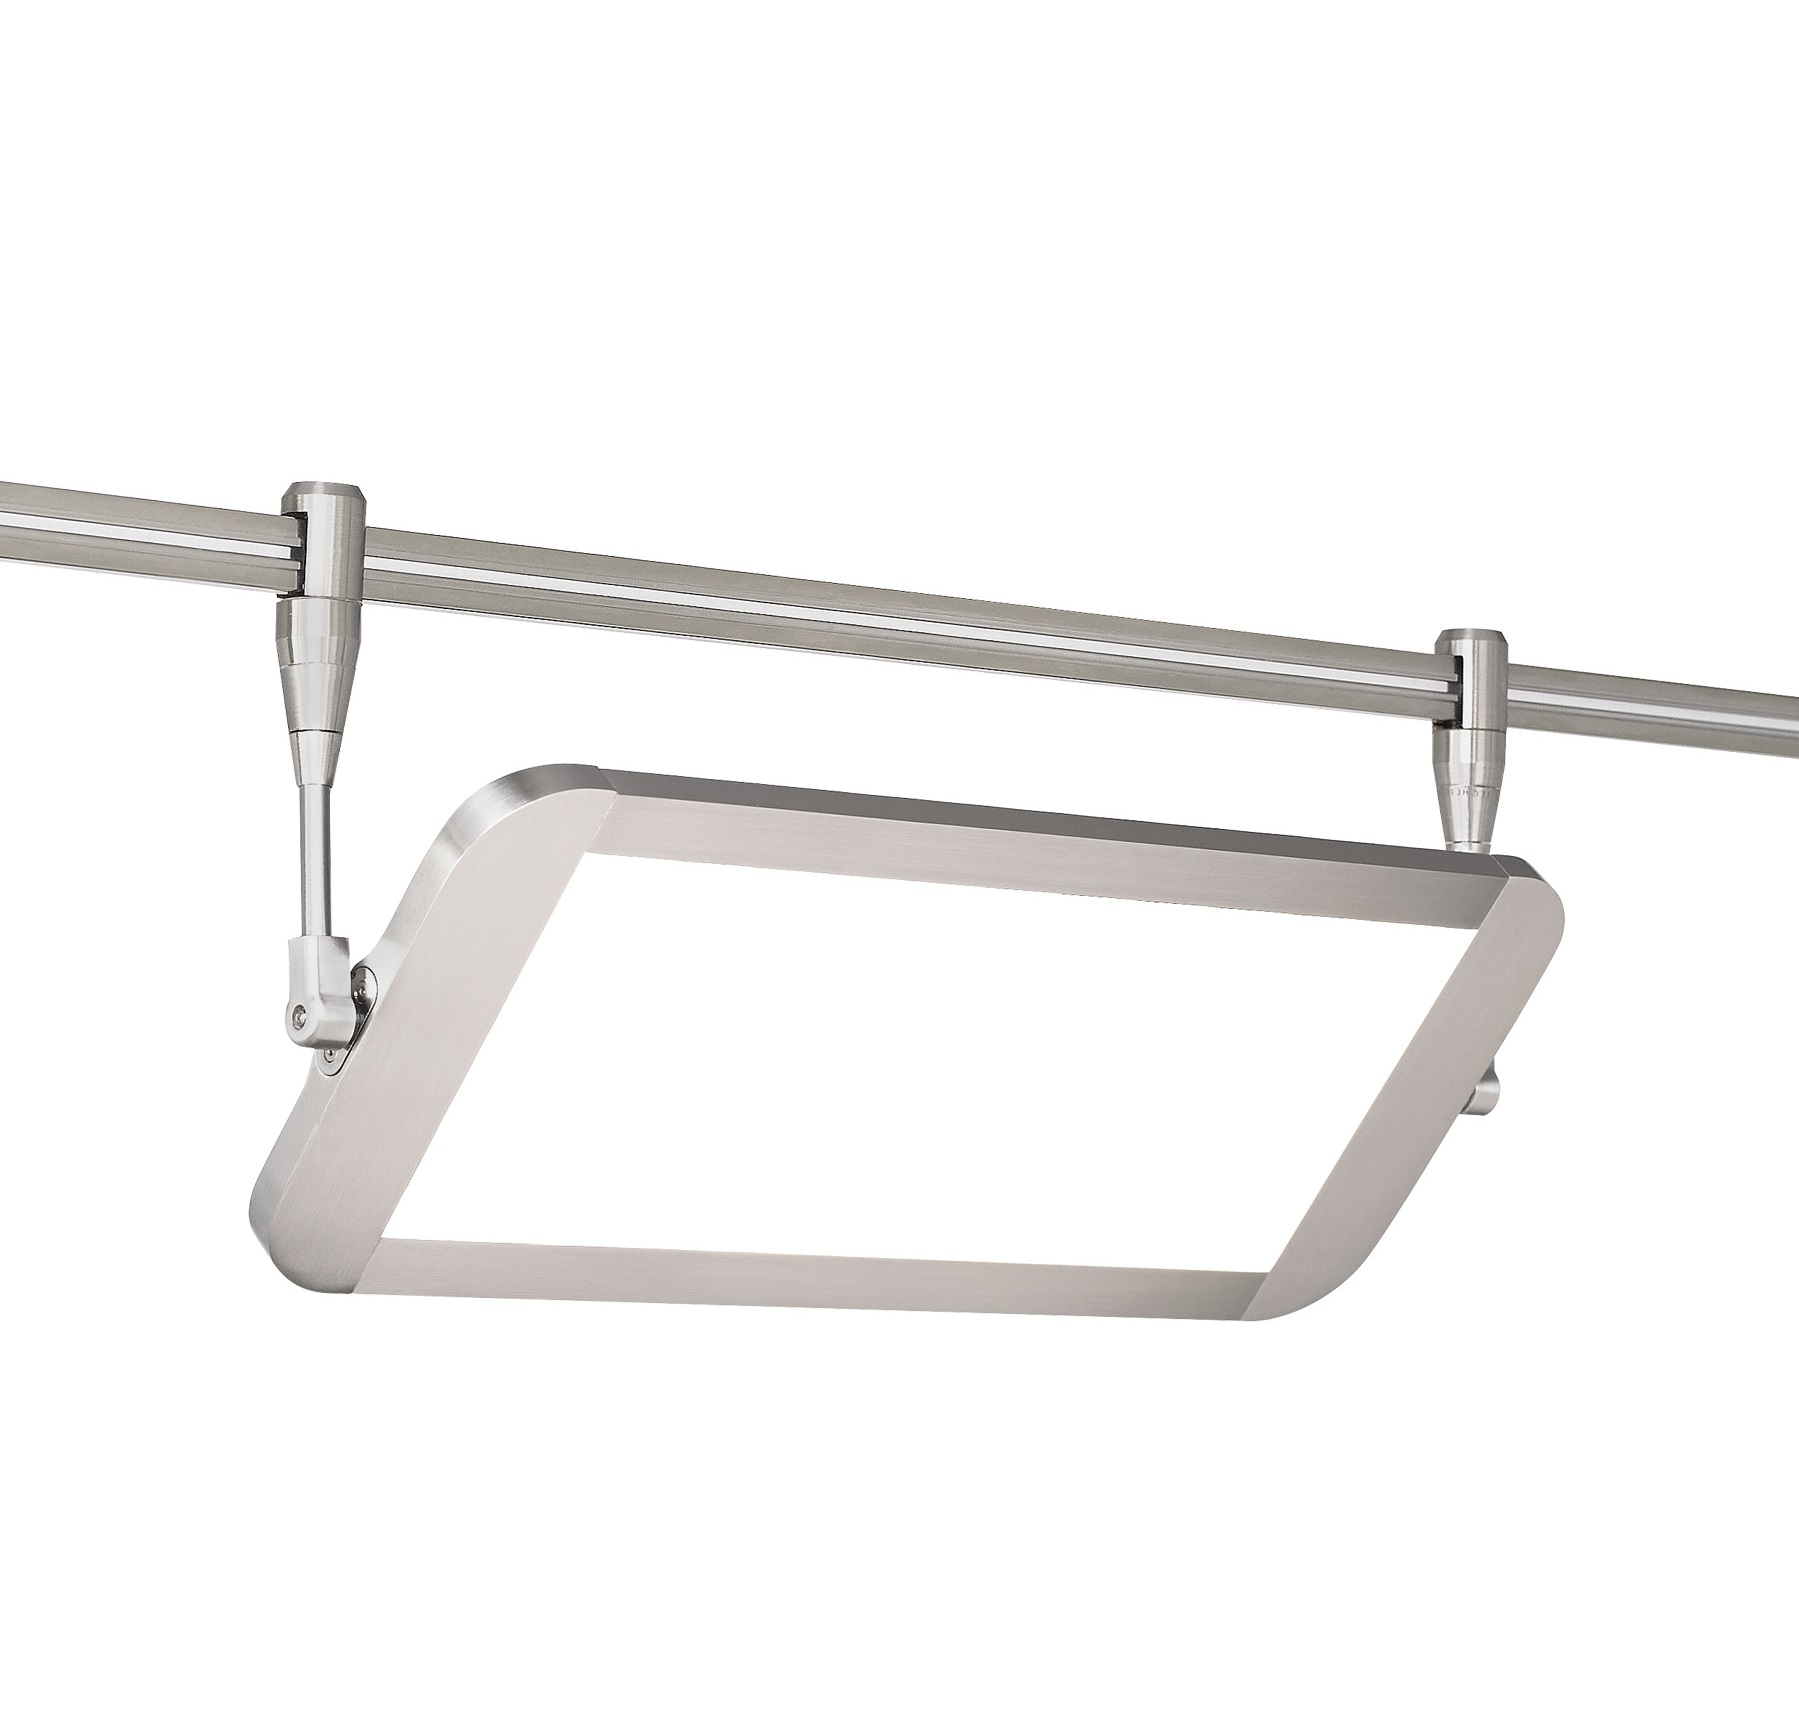 Tech lighting unveils new architectural heads the lev track head from tech lighting pivots 360 degrees and can be mounted up or down making it ideal for direct and indirect general illumination aloadofball Gallery